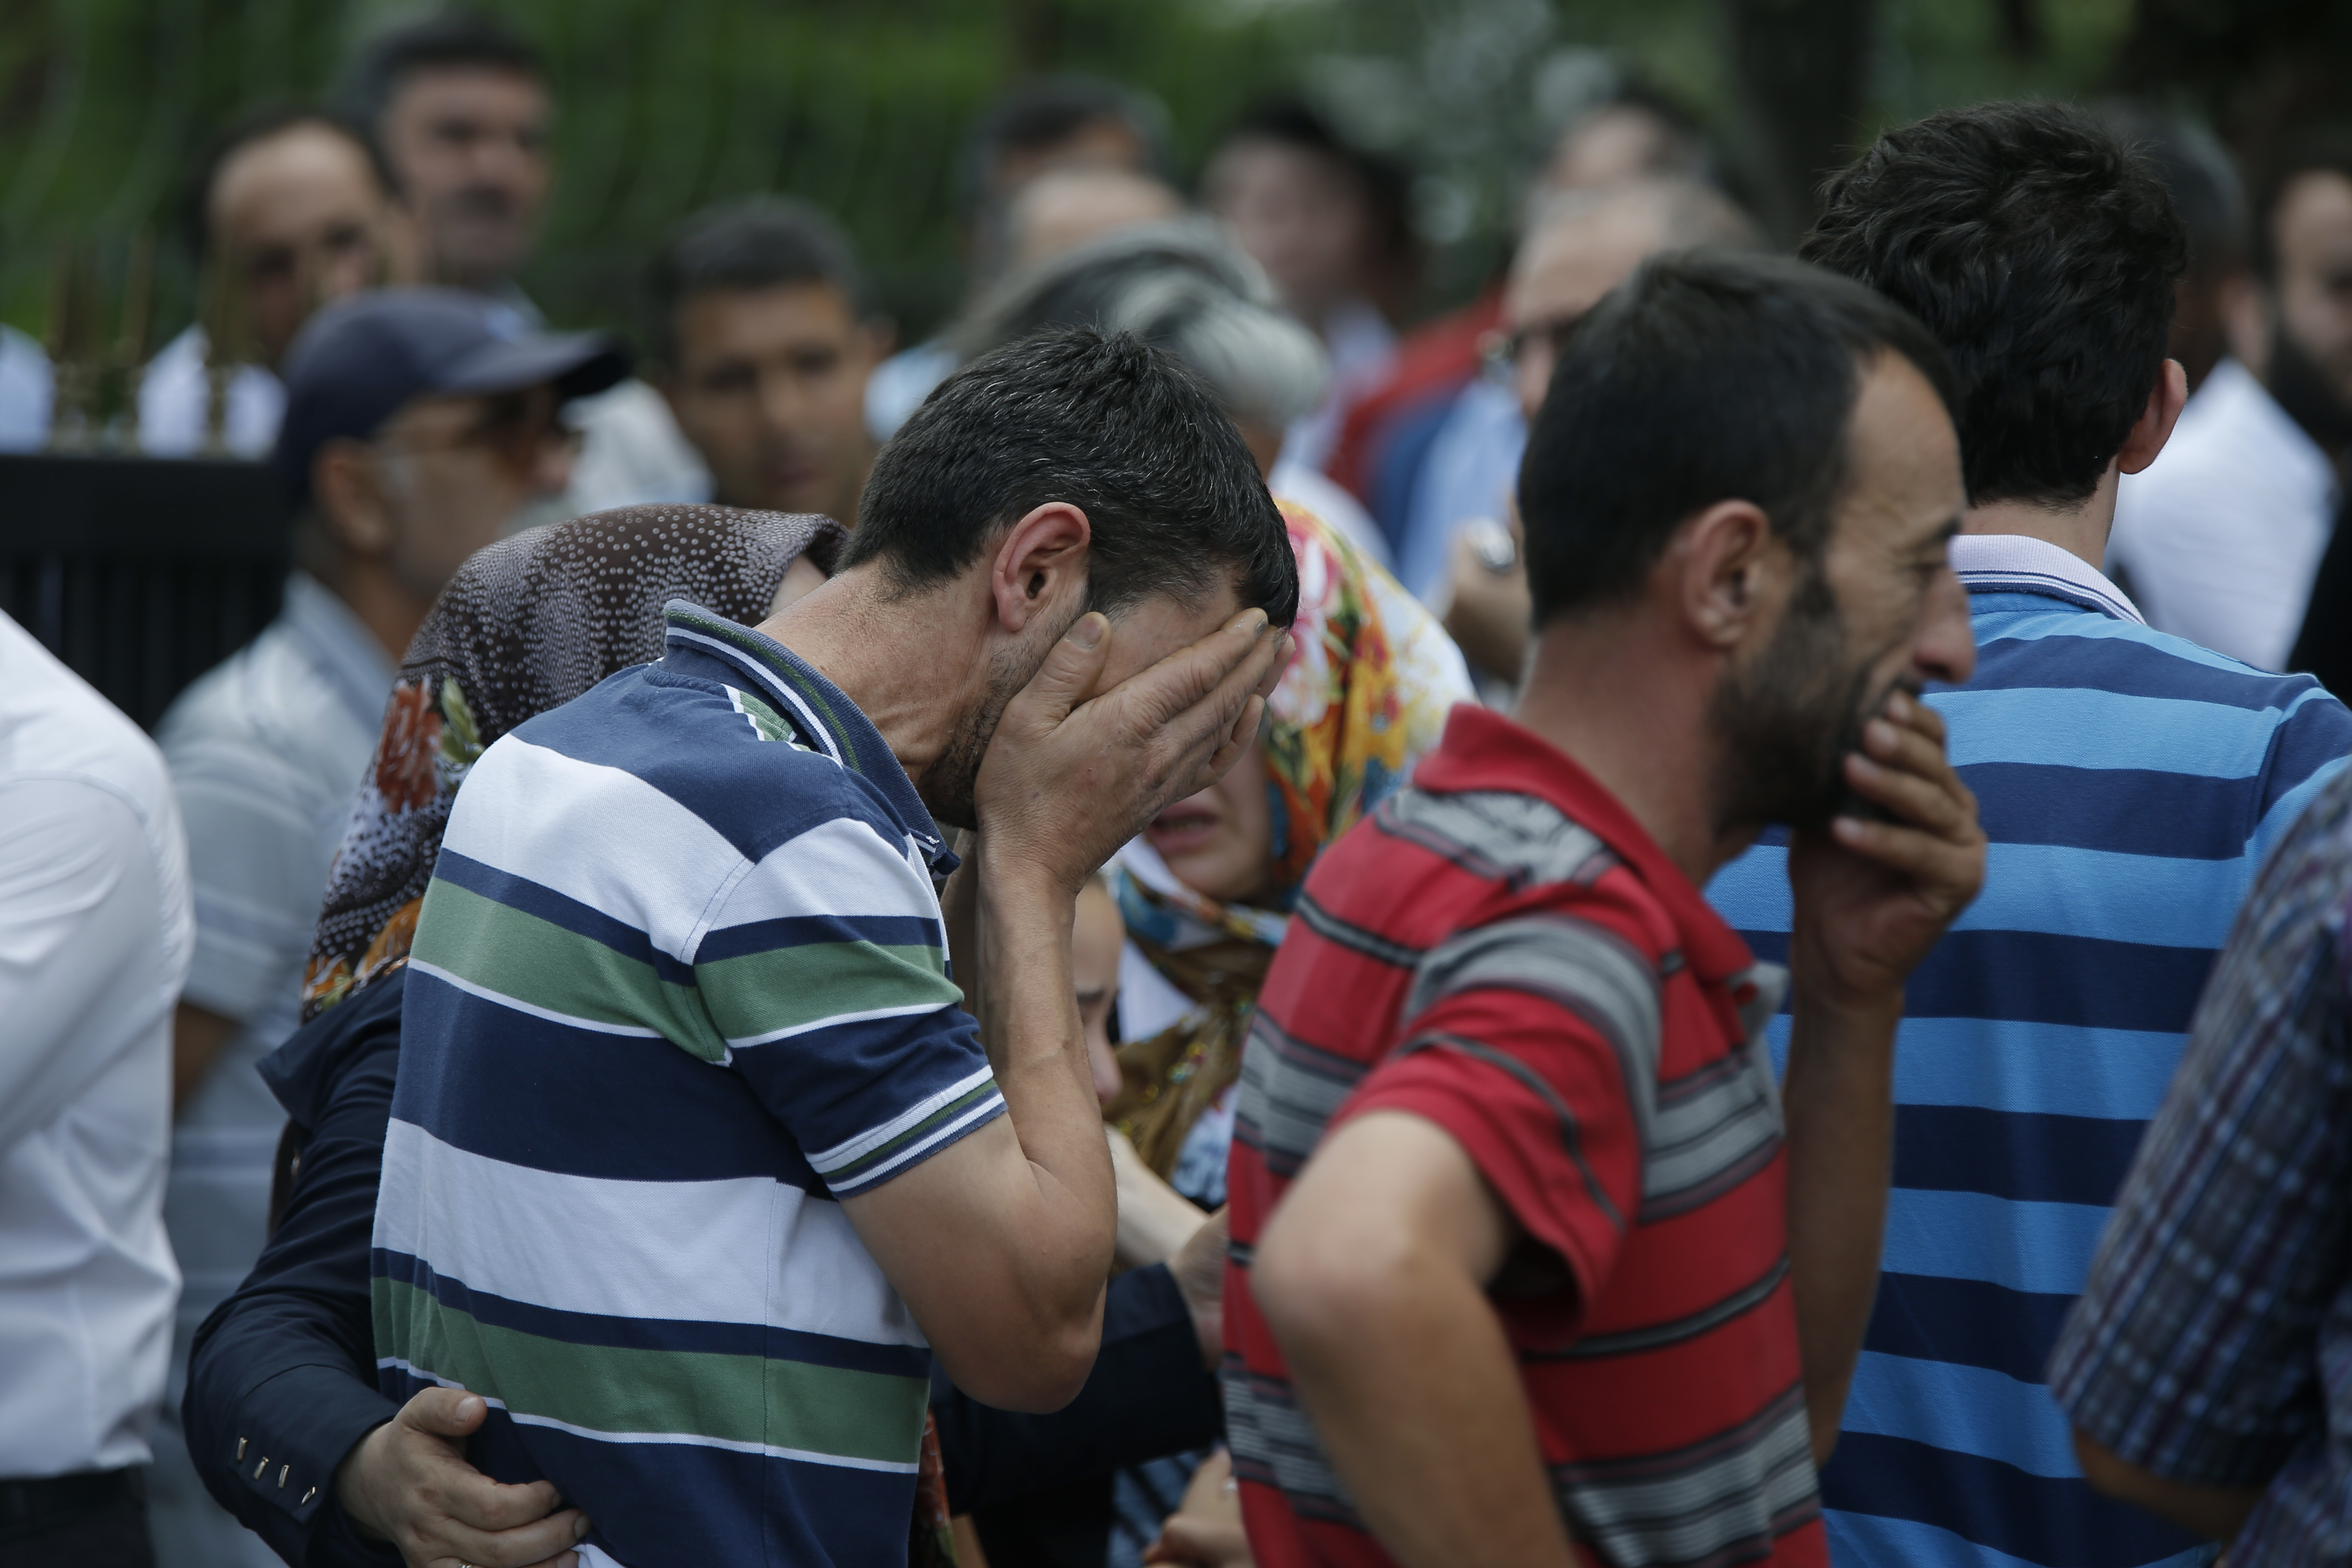 Family members of victims cry outside the Forensic Medical Center in Istanbul, Wednesday, June 29, 2016. Suicide attackers killed dozens and wounded more than 140 at Istanbul's busy Ataturk Airport late Tuesday, the latest in a series of bombings to strike Turkey in recent months. Turkish officials said the massacre was most likely the work of the Islamic State group. Turkish authorities have banned distribution of images relating to the Ataturk airport attack within Turkey.(AP Photo/Emrah Gurel) TURKEY OUT